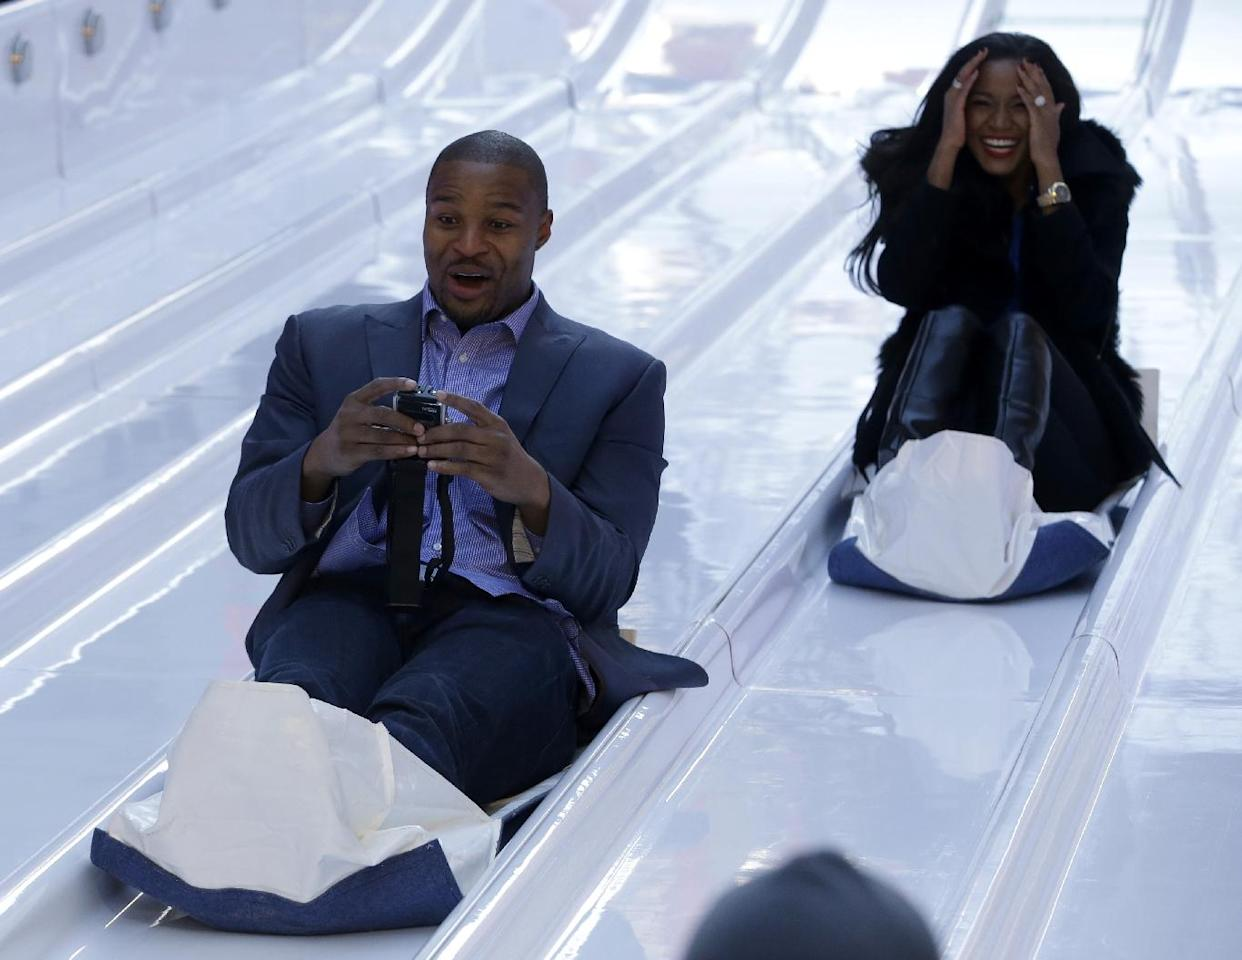 Atlanta Falcons defensive end Osi Umenyiora, left, and his fiancee, Miss Universe 2011 Leila Lopes, right, slide down the toboggan slide during Super Bowl Boulevard festivities Wednesday, Jan. 29, 2014, in New York. The Seattle Seahawks are scheduled to play the Denver Broncos in the NFL Super Bowl XLVIII football game on Sunday, Feb. 2, in East Rutherford, N.J. (AP Photo/Julio Cortez)